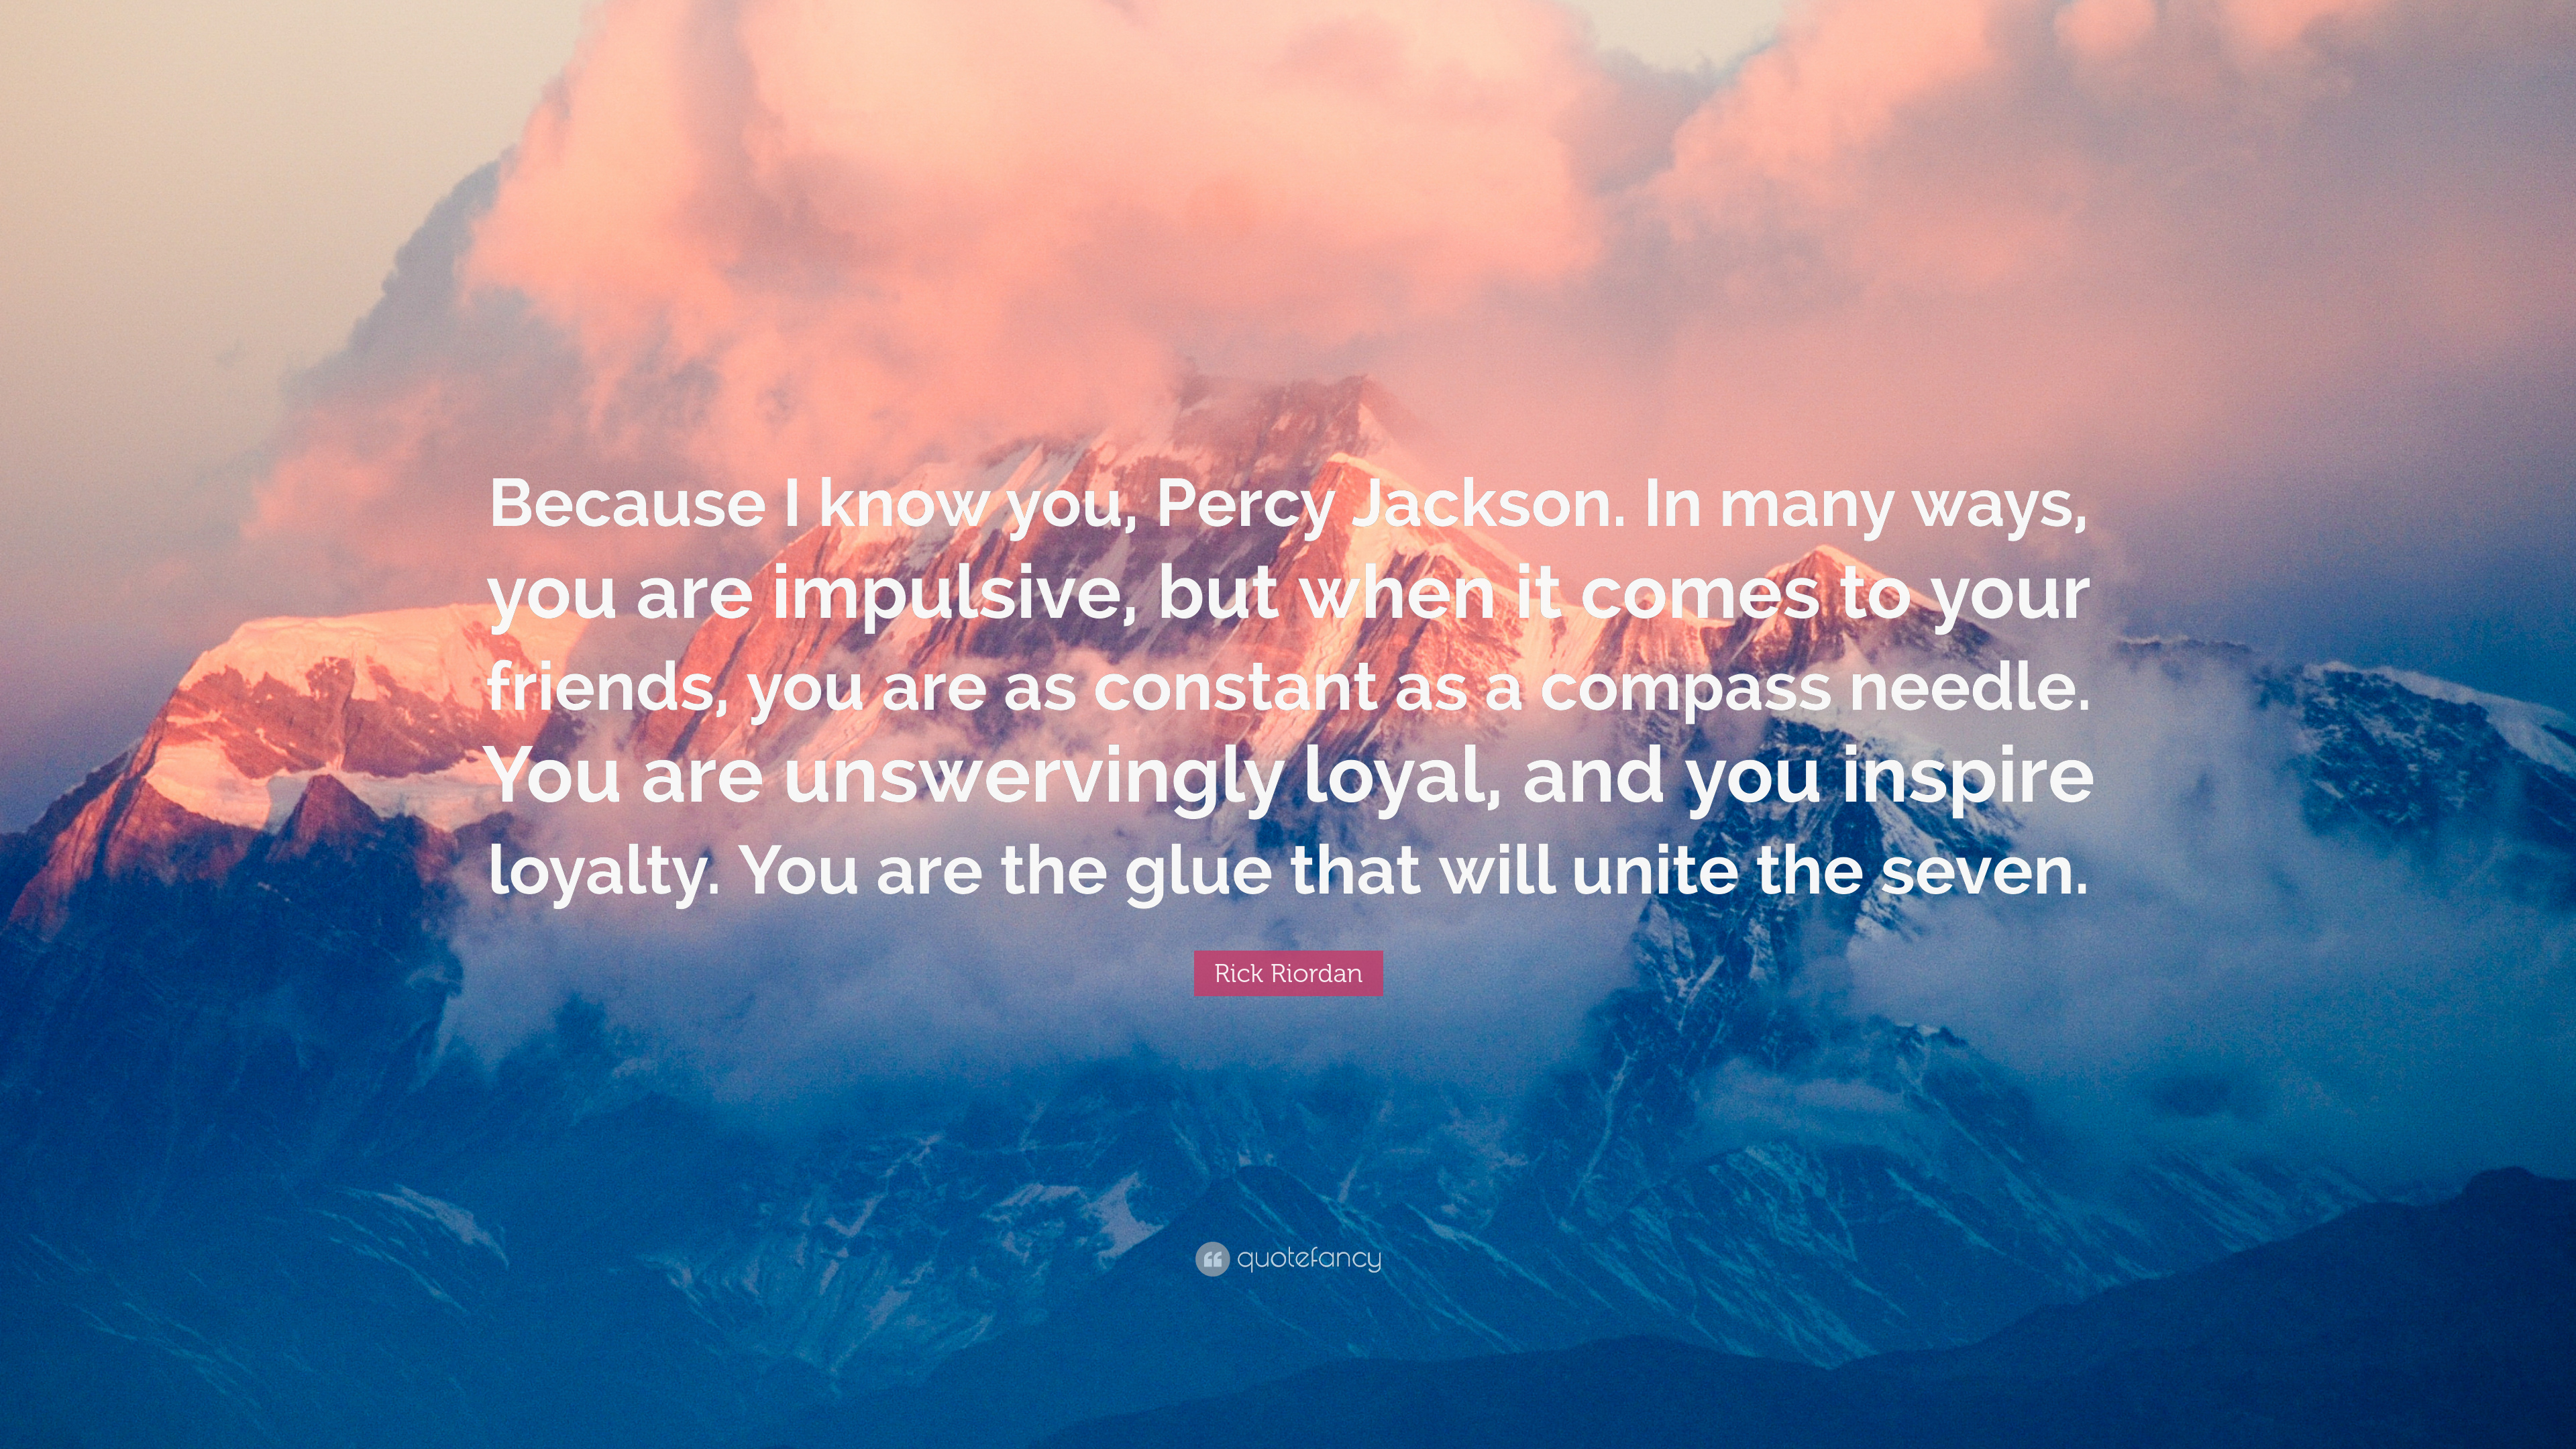 Rick riordan quote because i know you percy jackson in many ways rick riordan quote because i know you percy jackson in many ways voltagebd Image collections